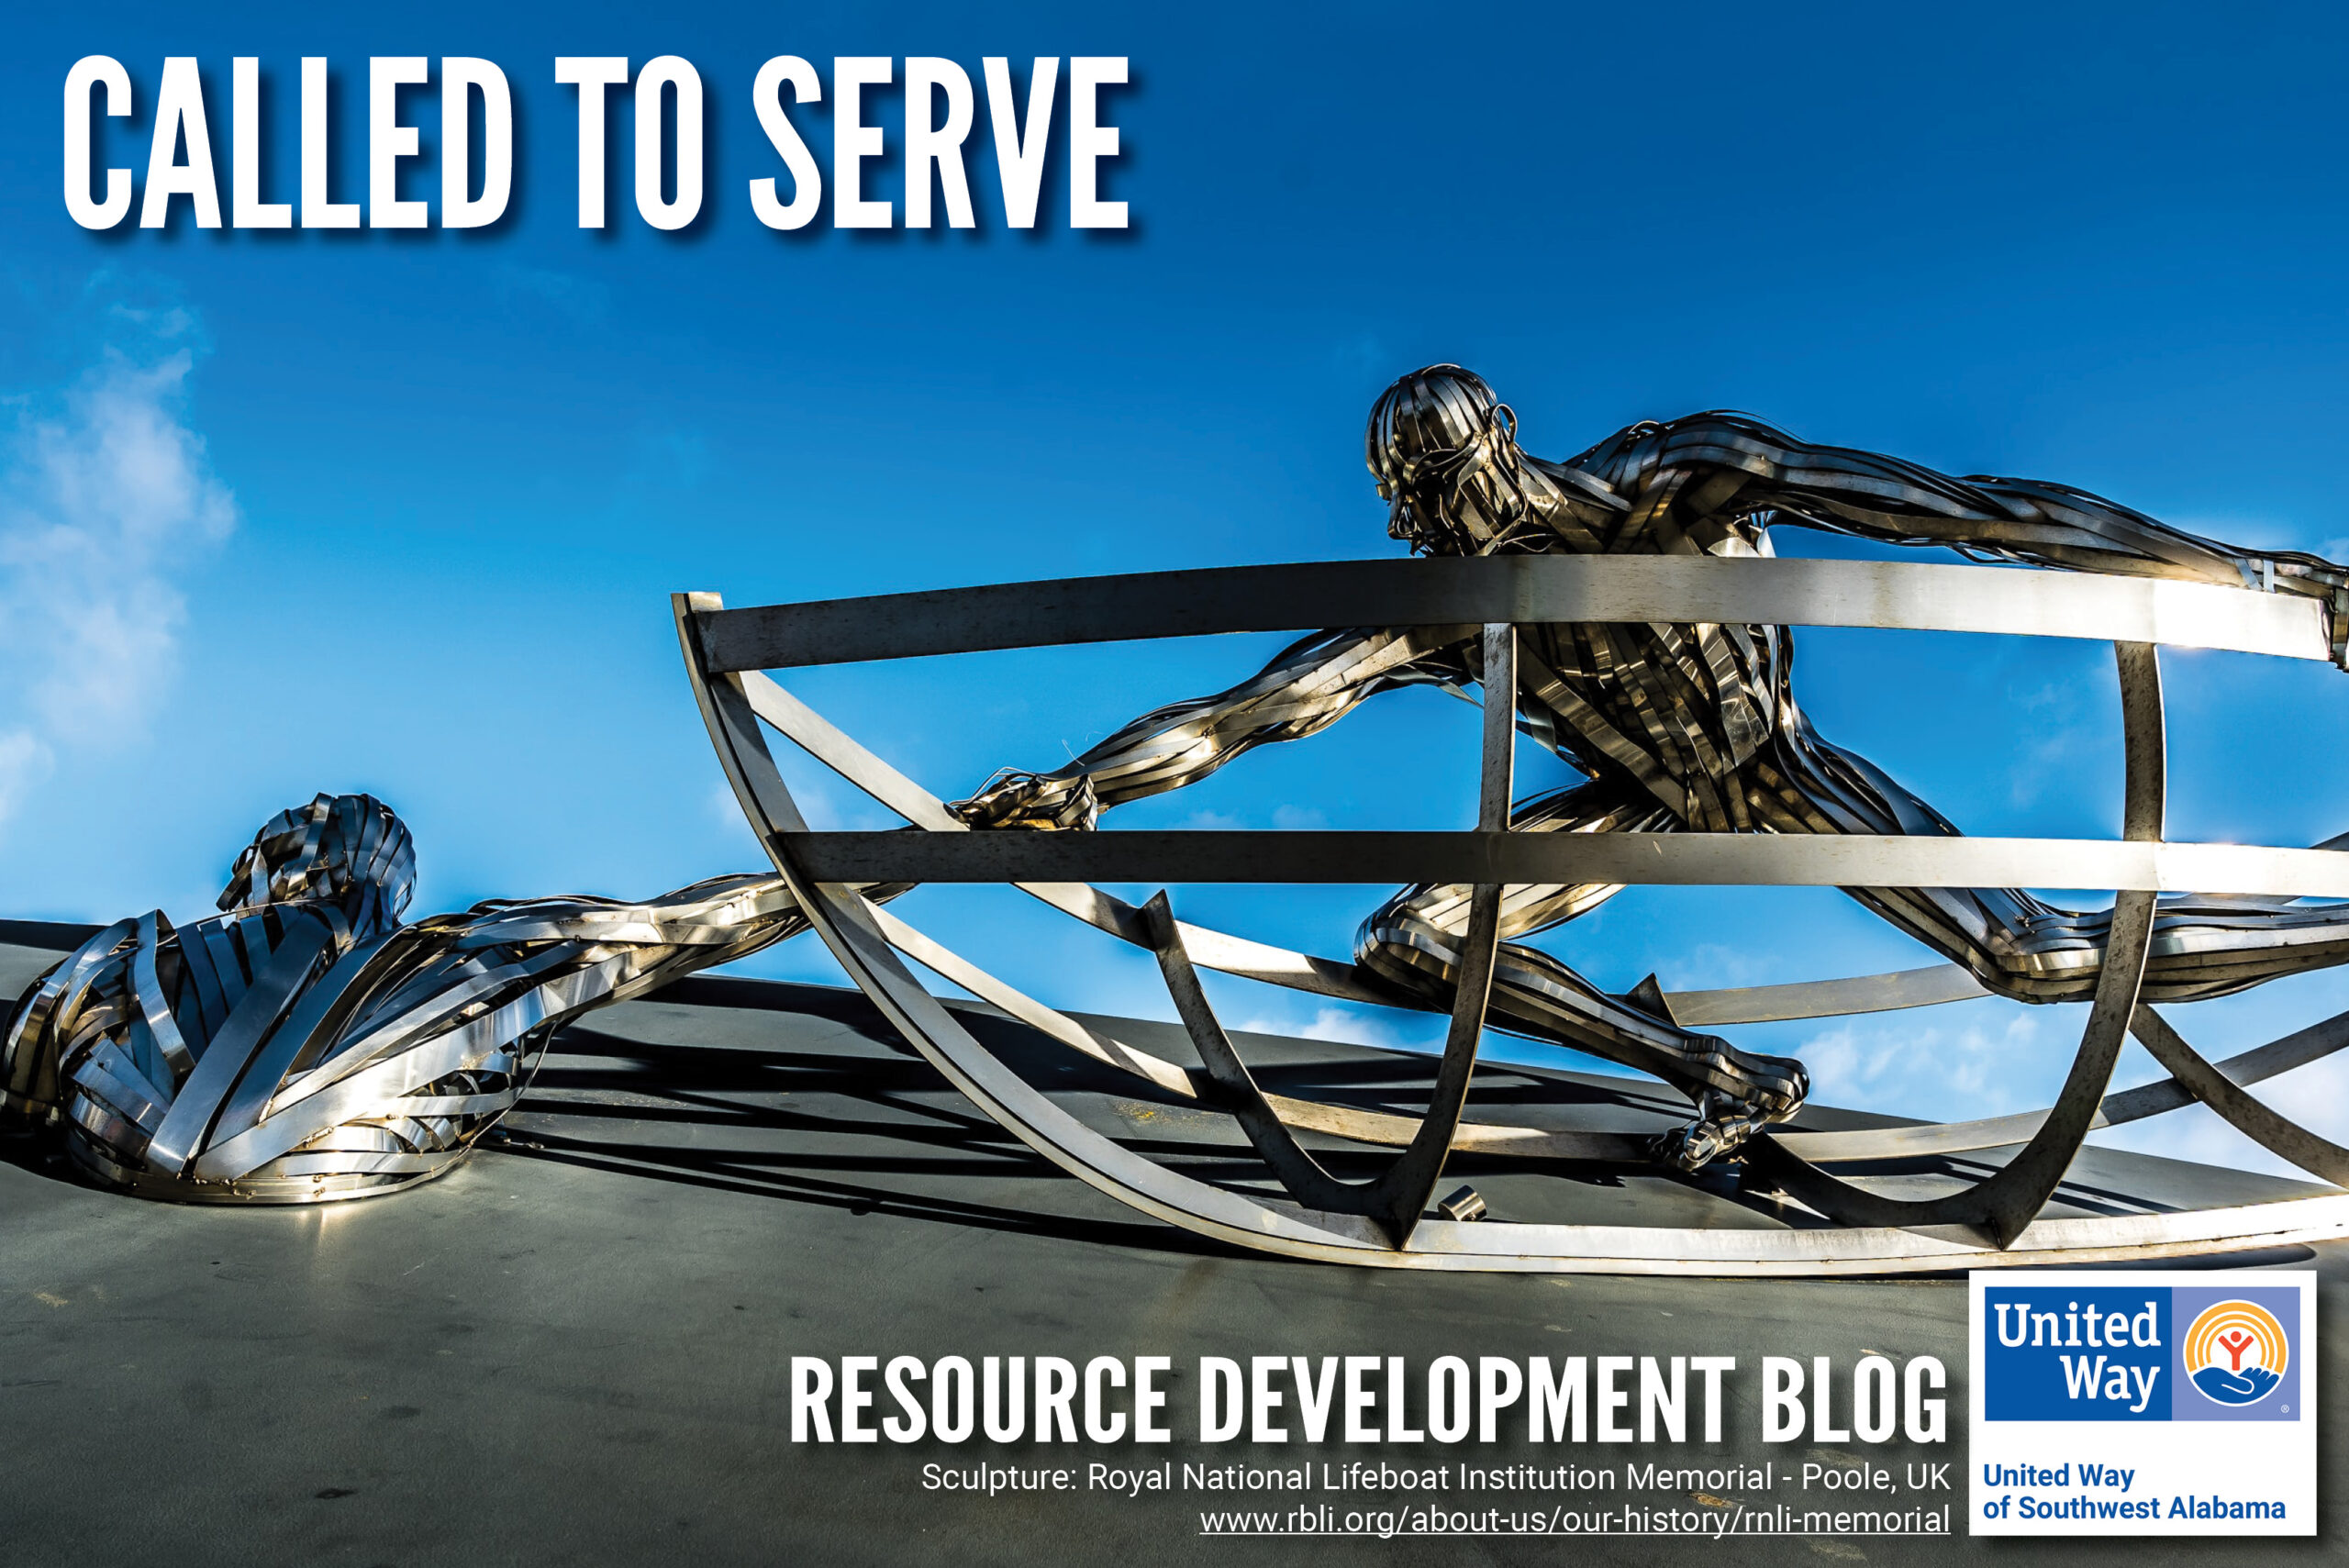 21-RD Blog: Called to Serve